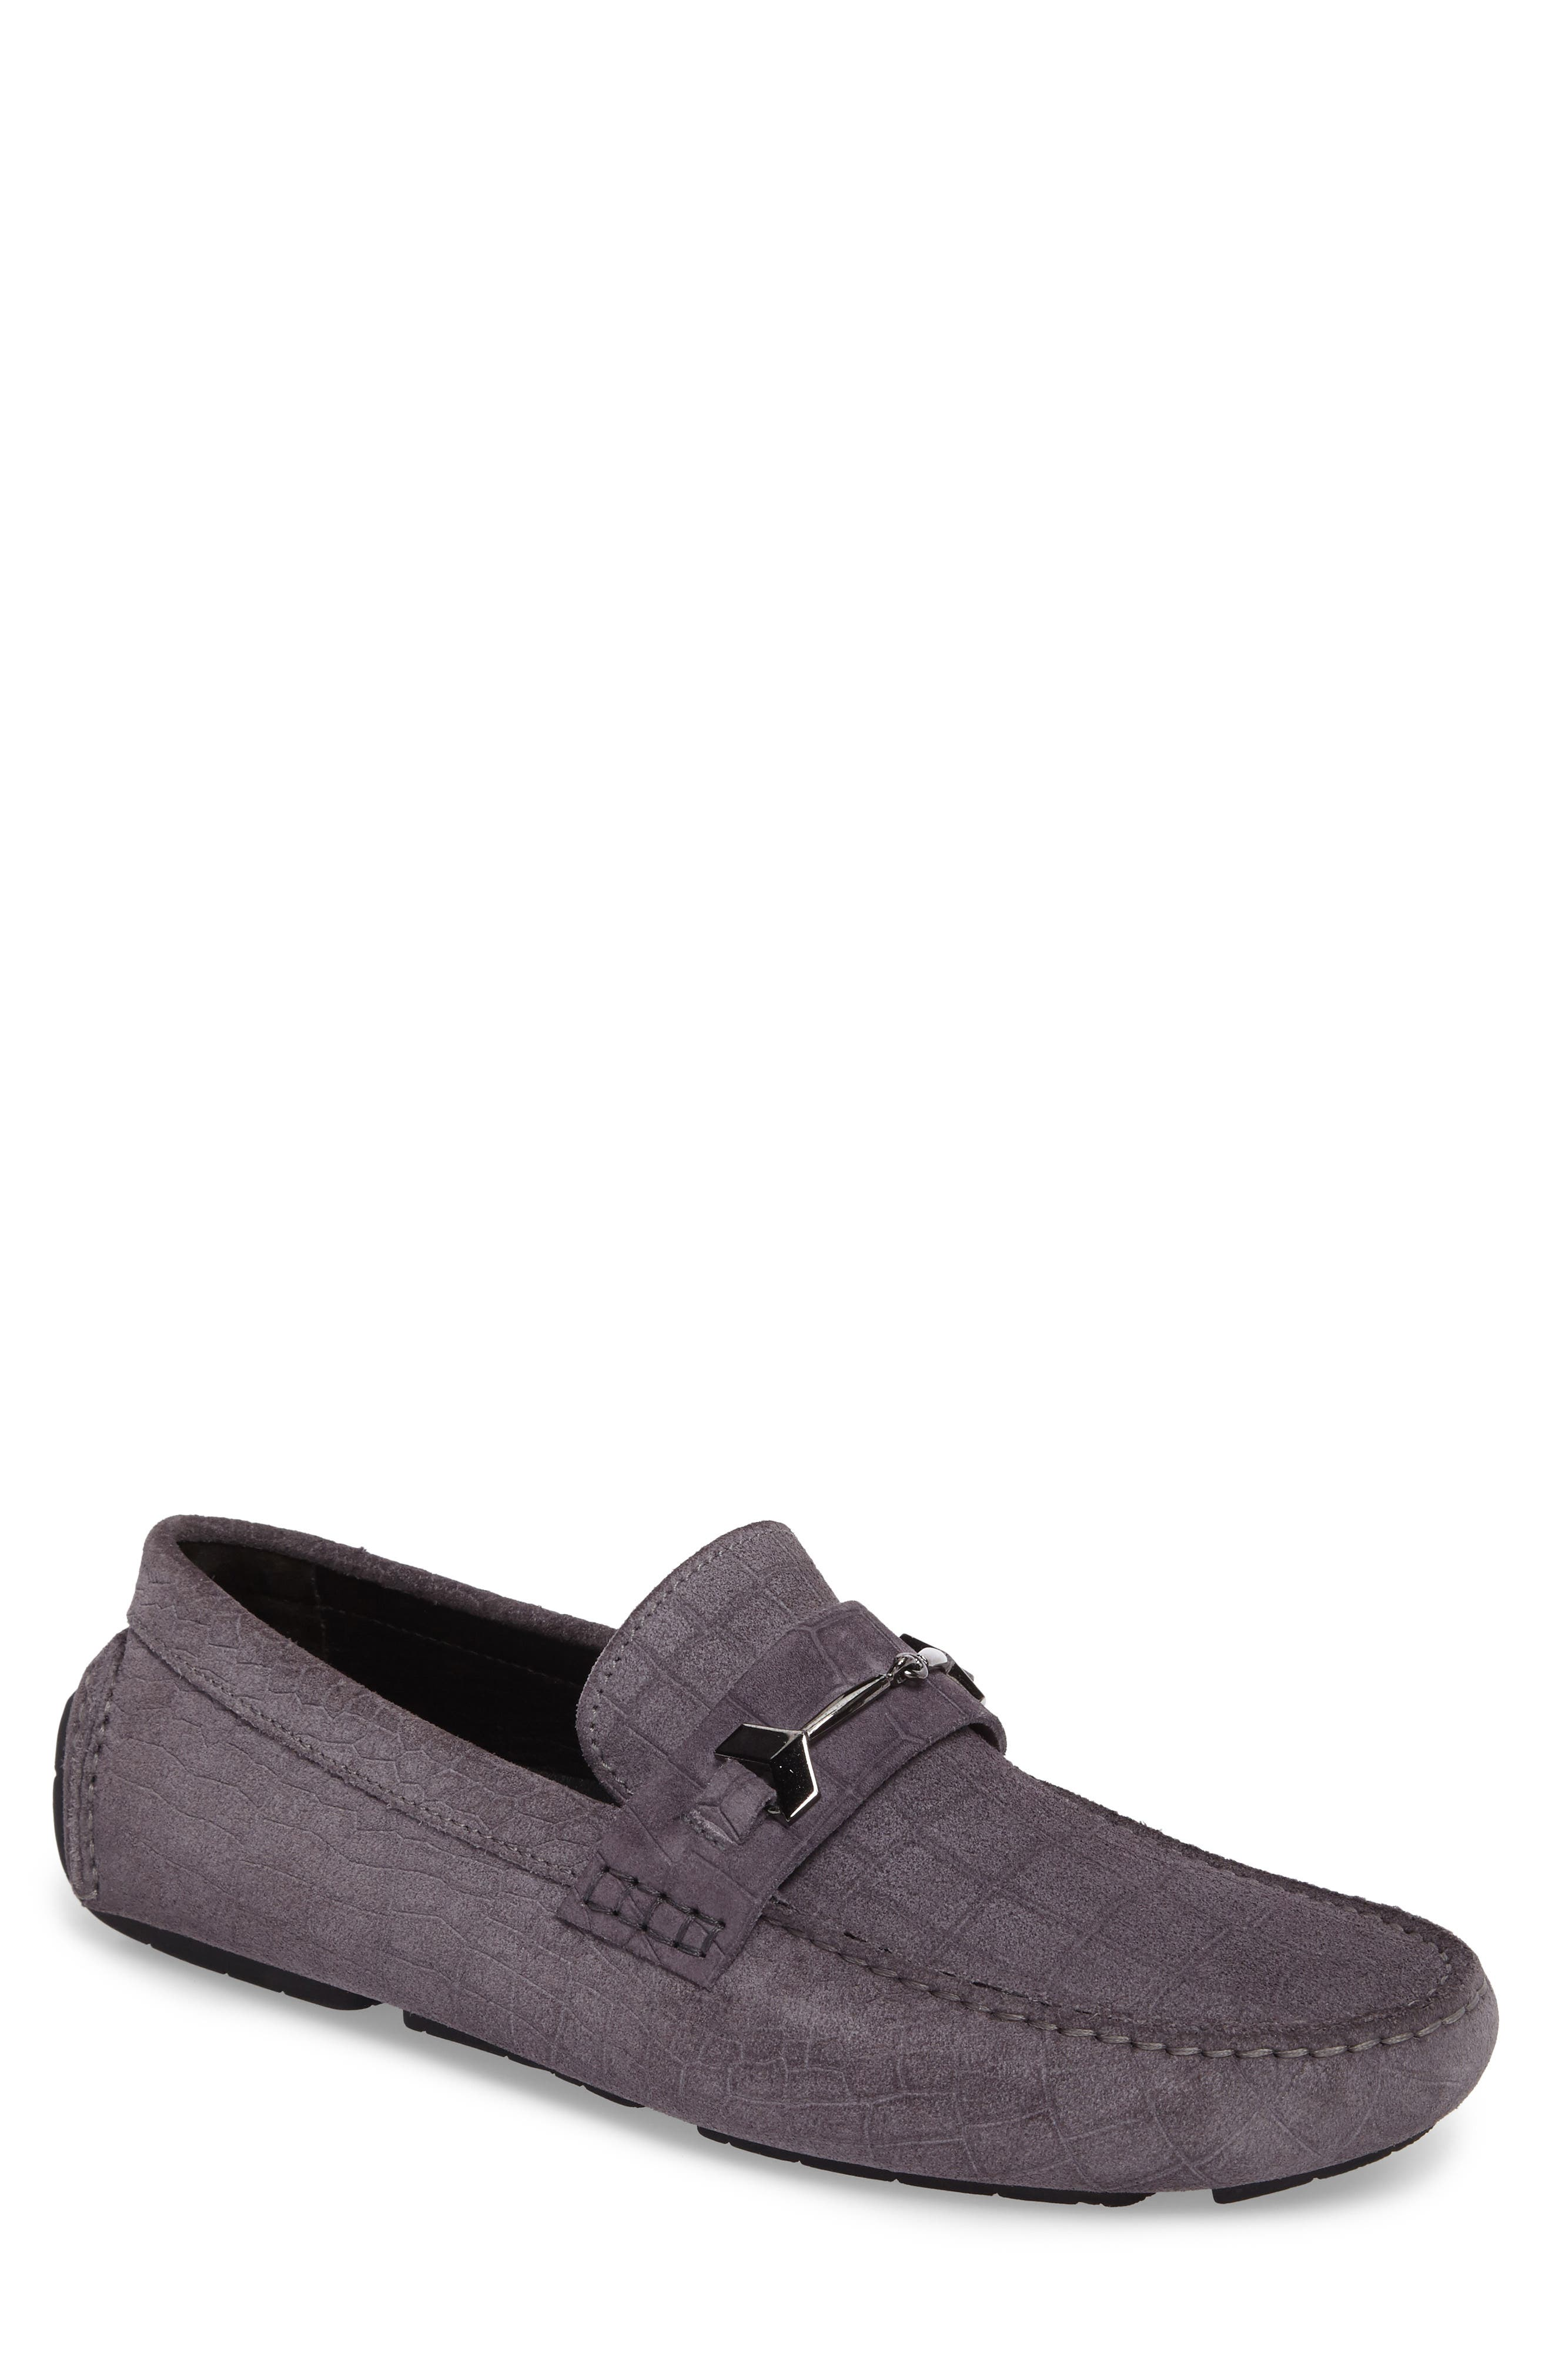 Brewer Croc Textured Driving Loafer,                             Main thumbnail 2, color,